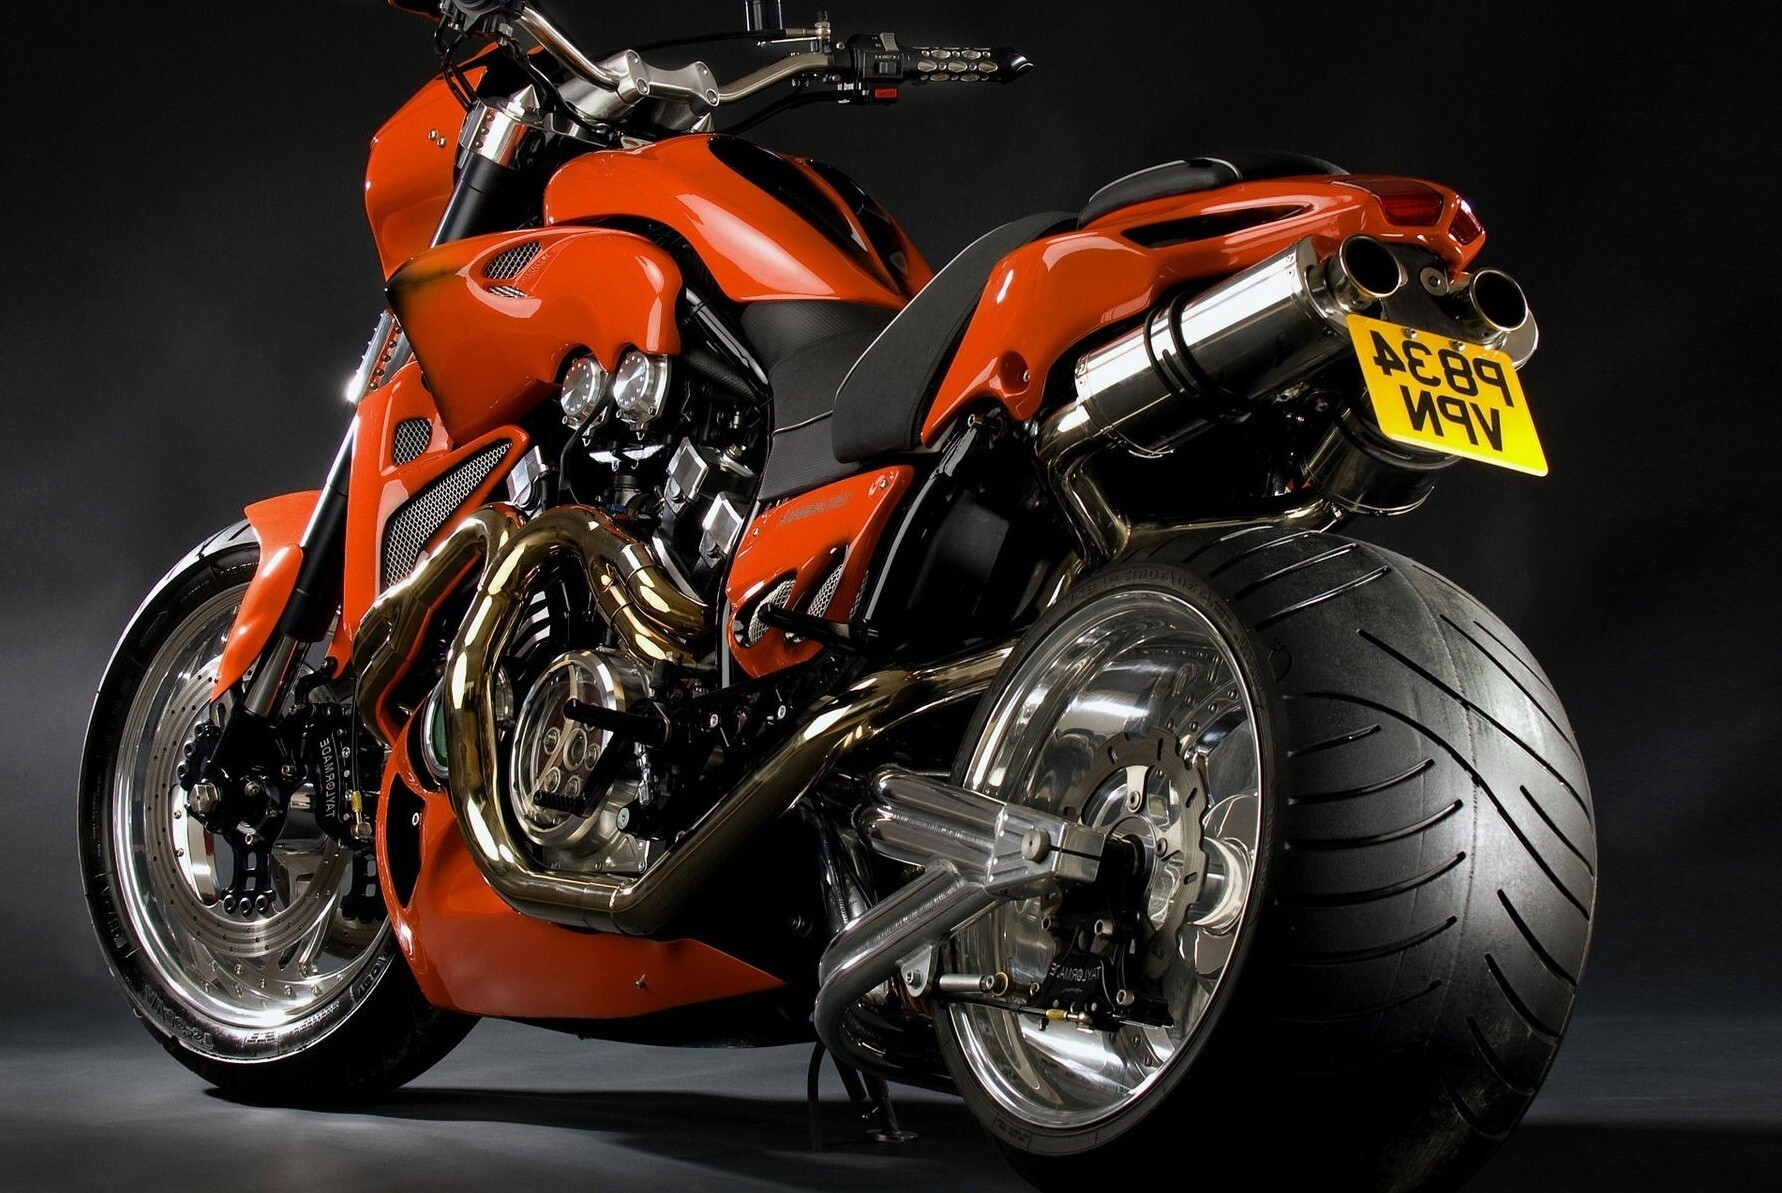 Sports Wallpapers Hd: Amazing Orange Sport Bike HD Wallpaper